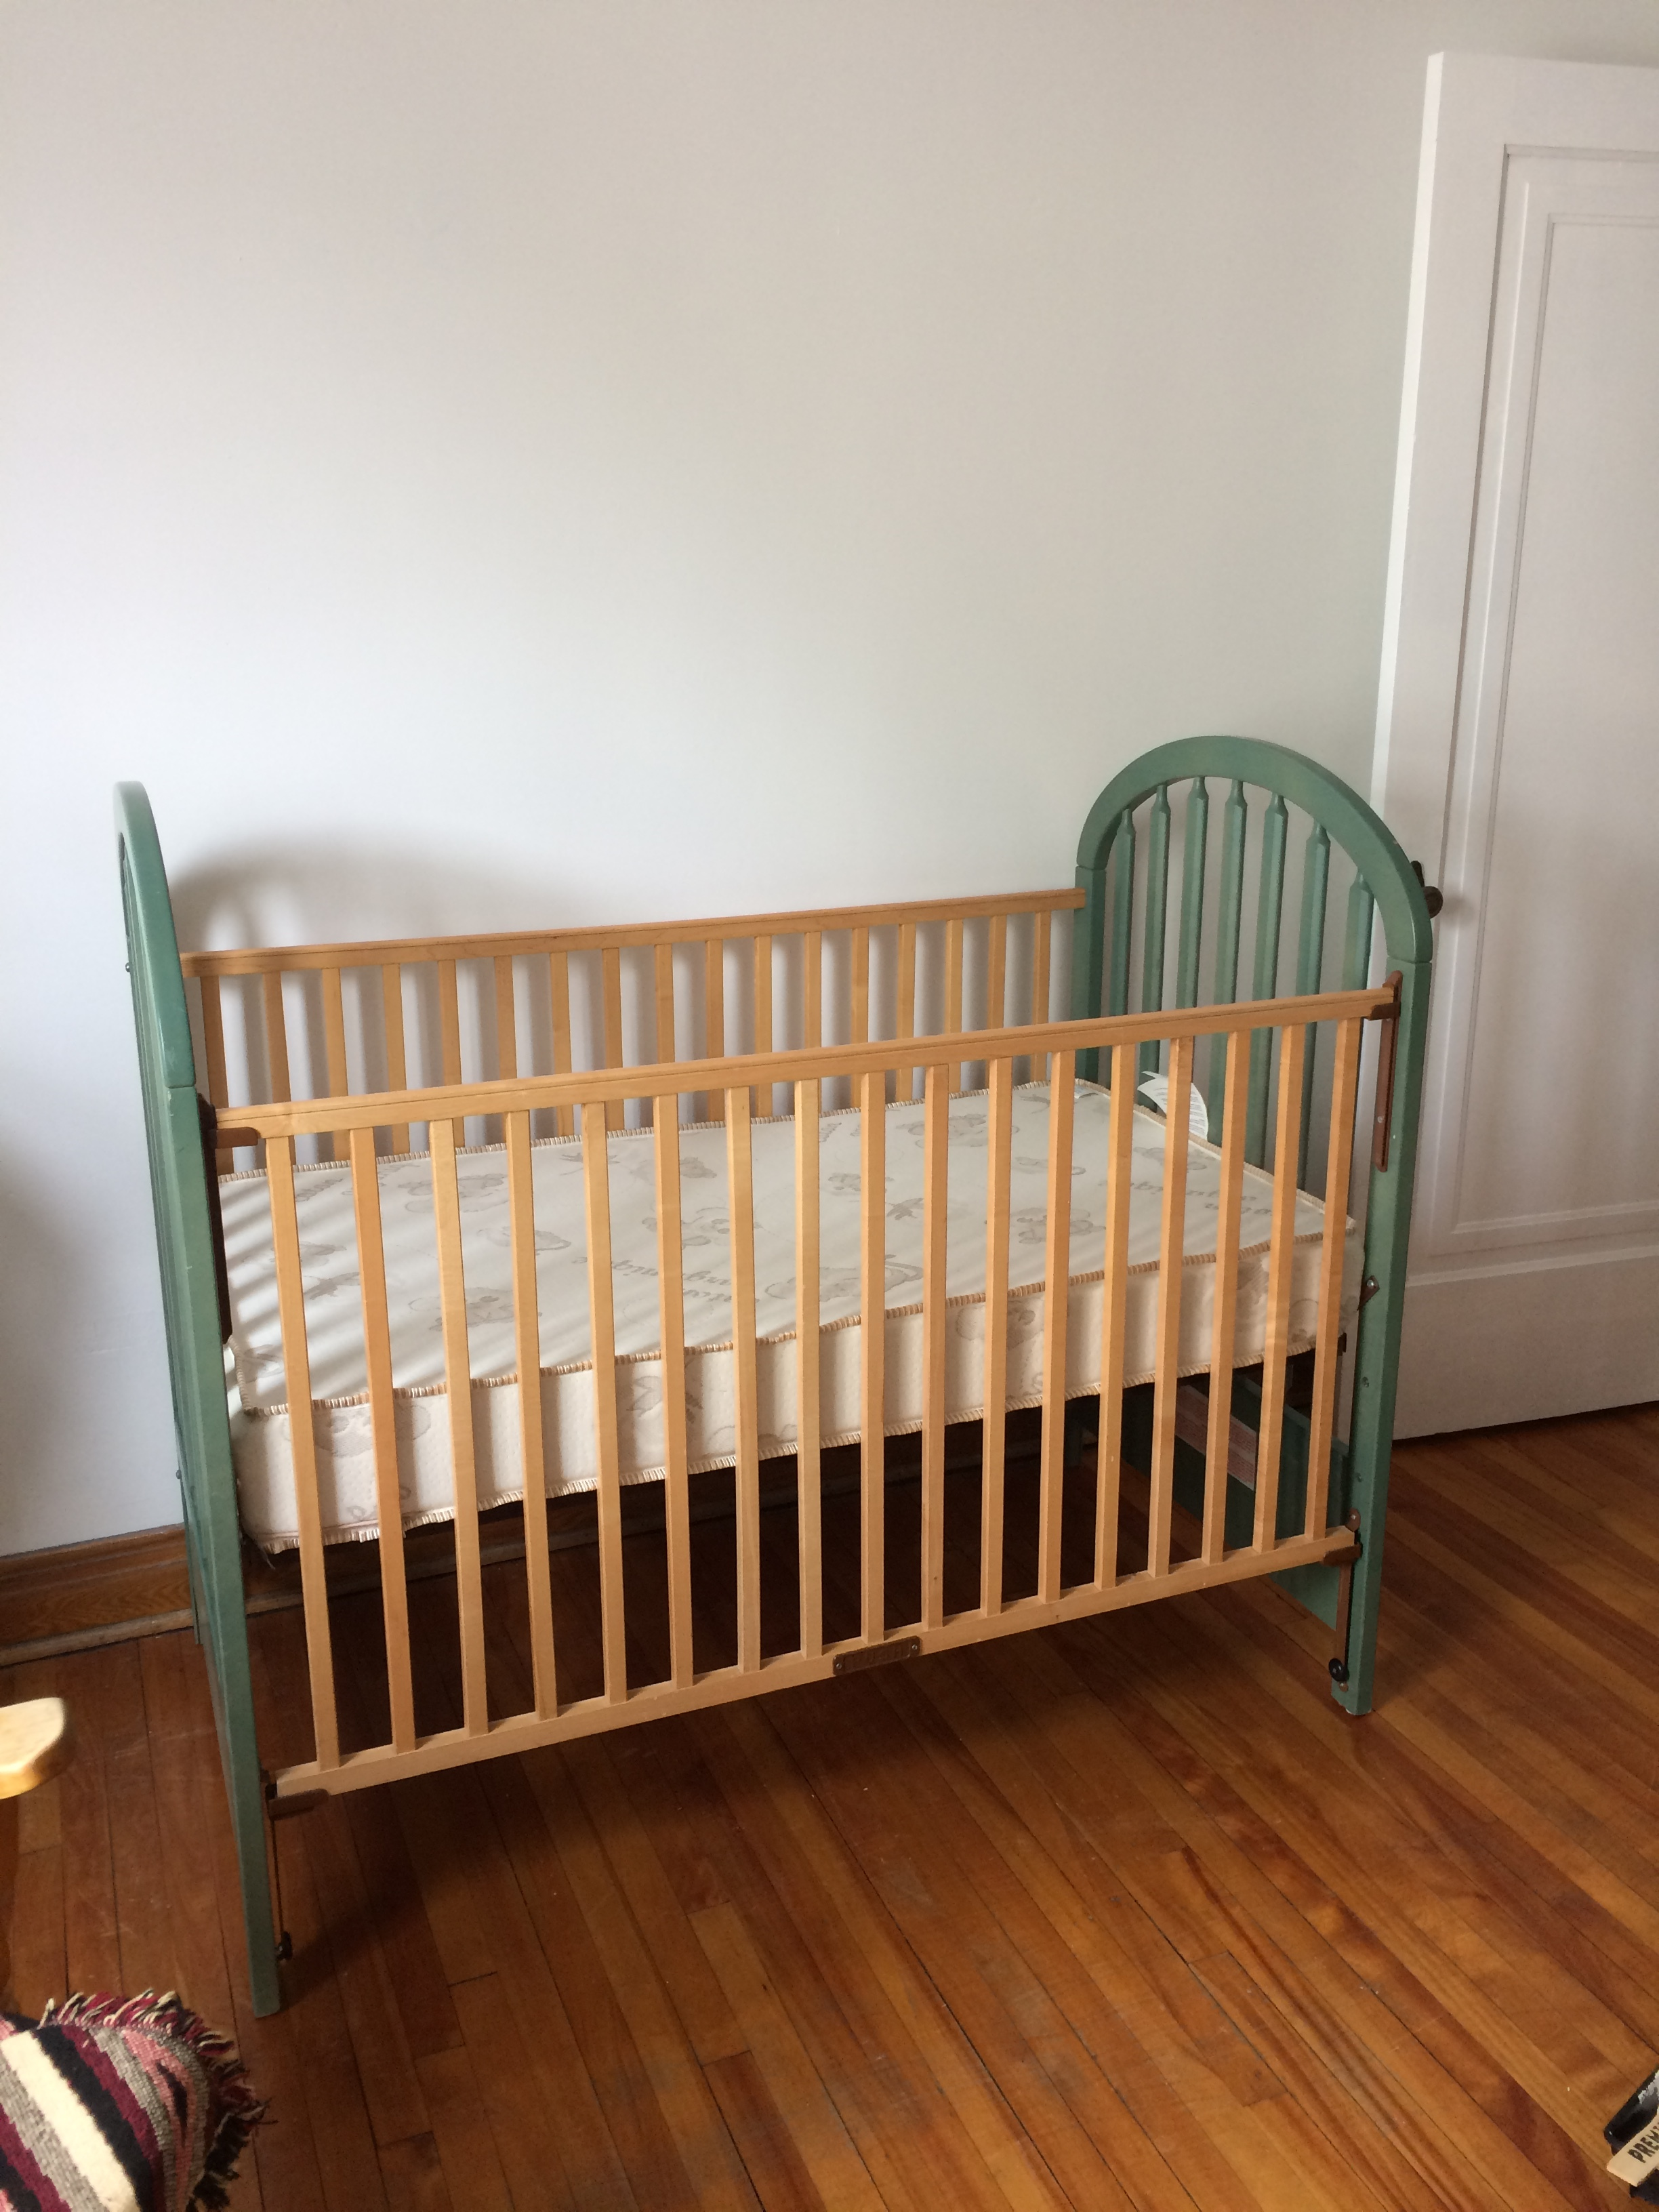 Baby room: Crib before